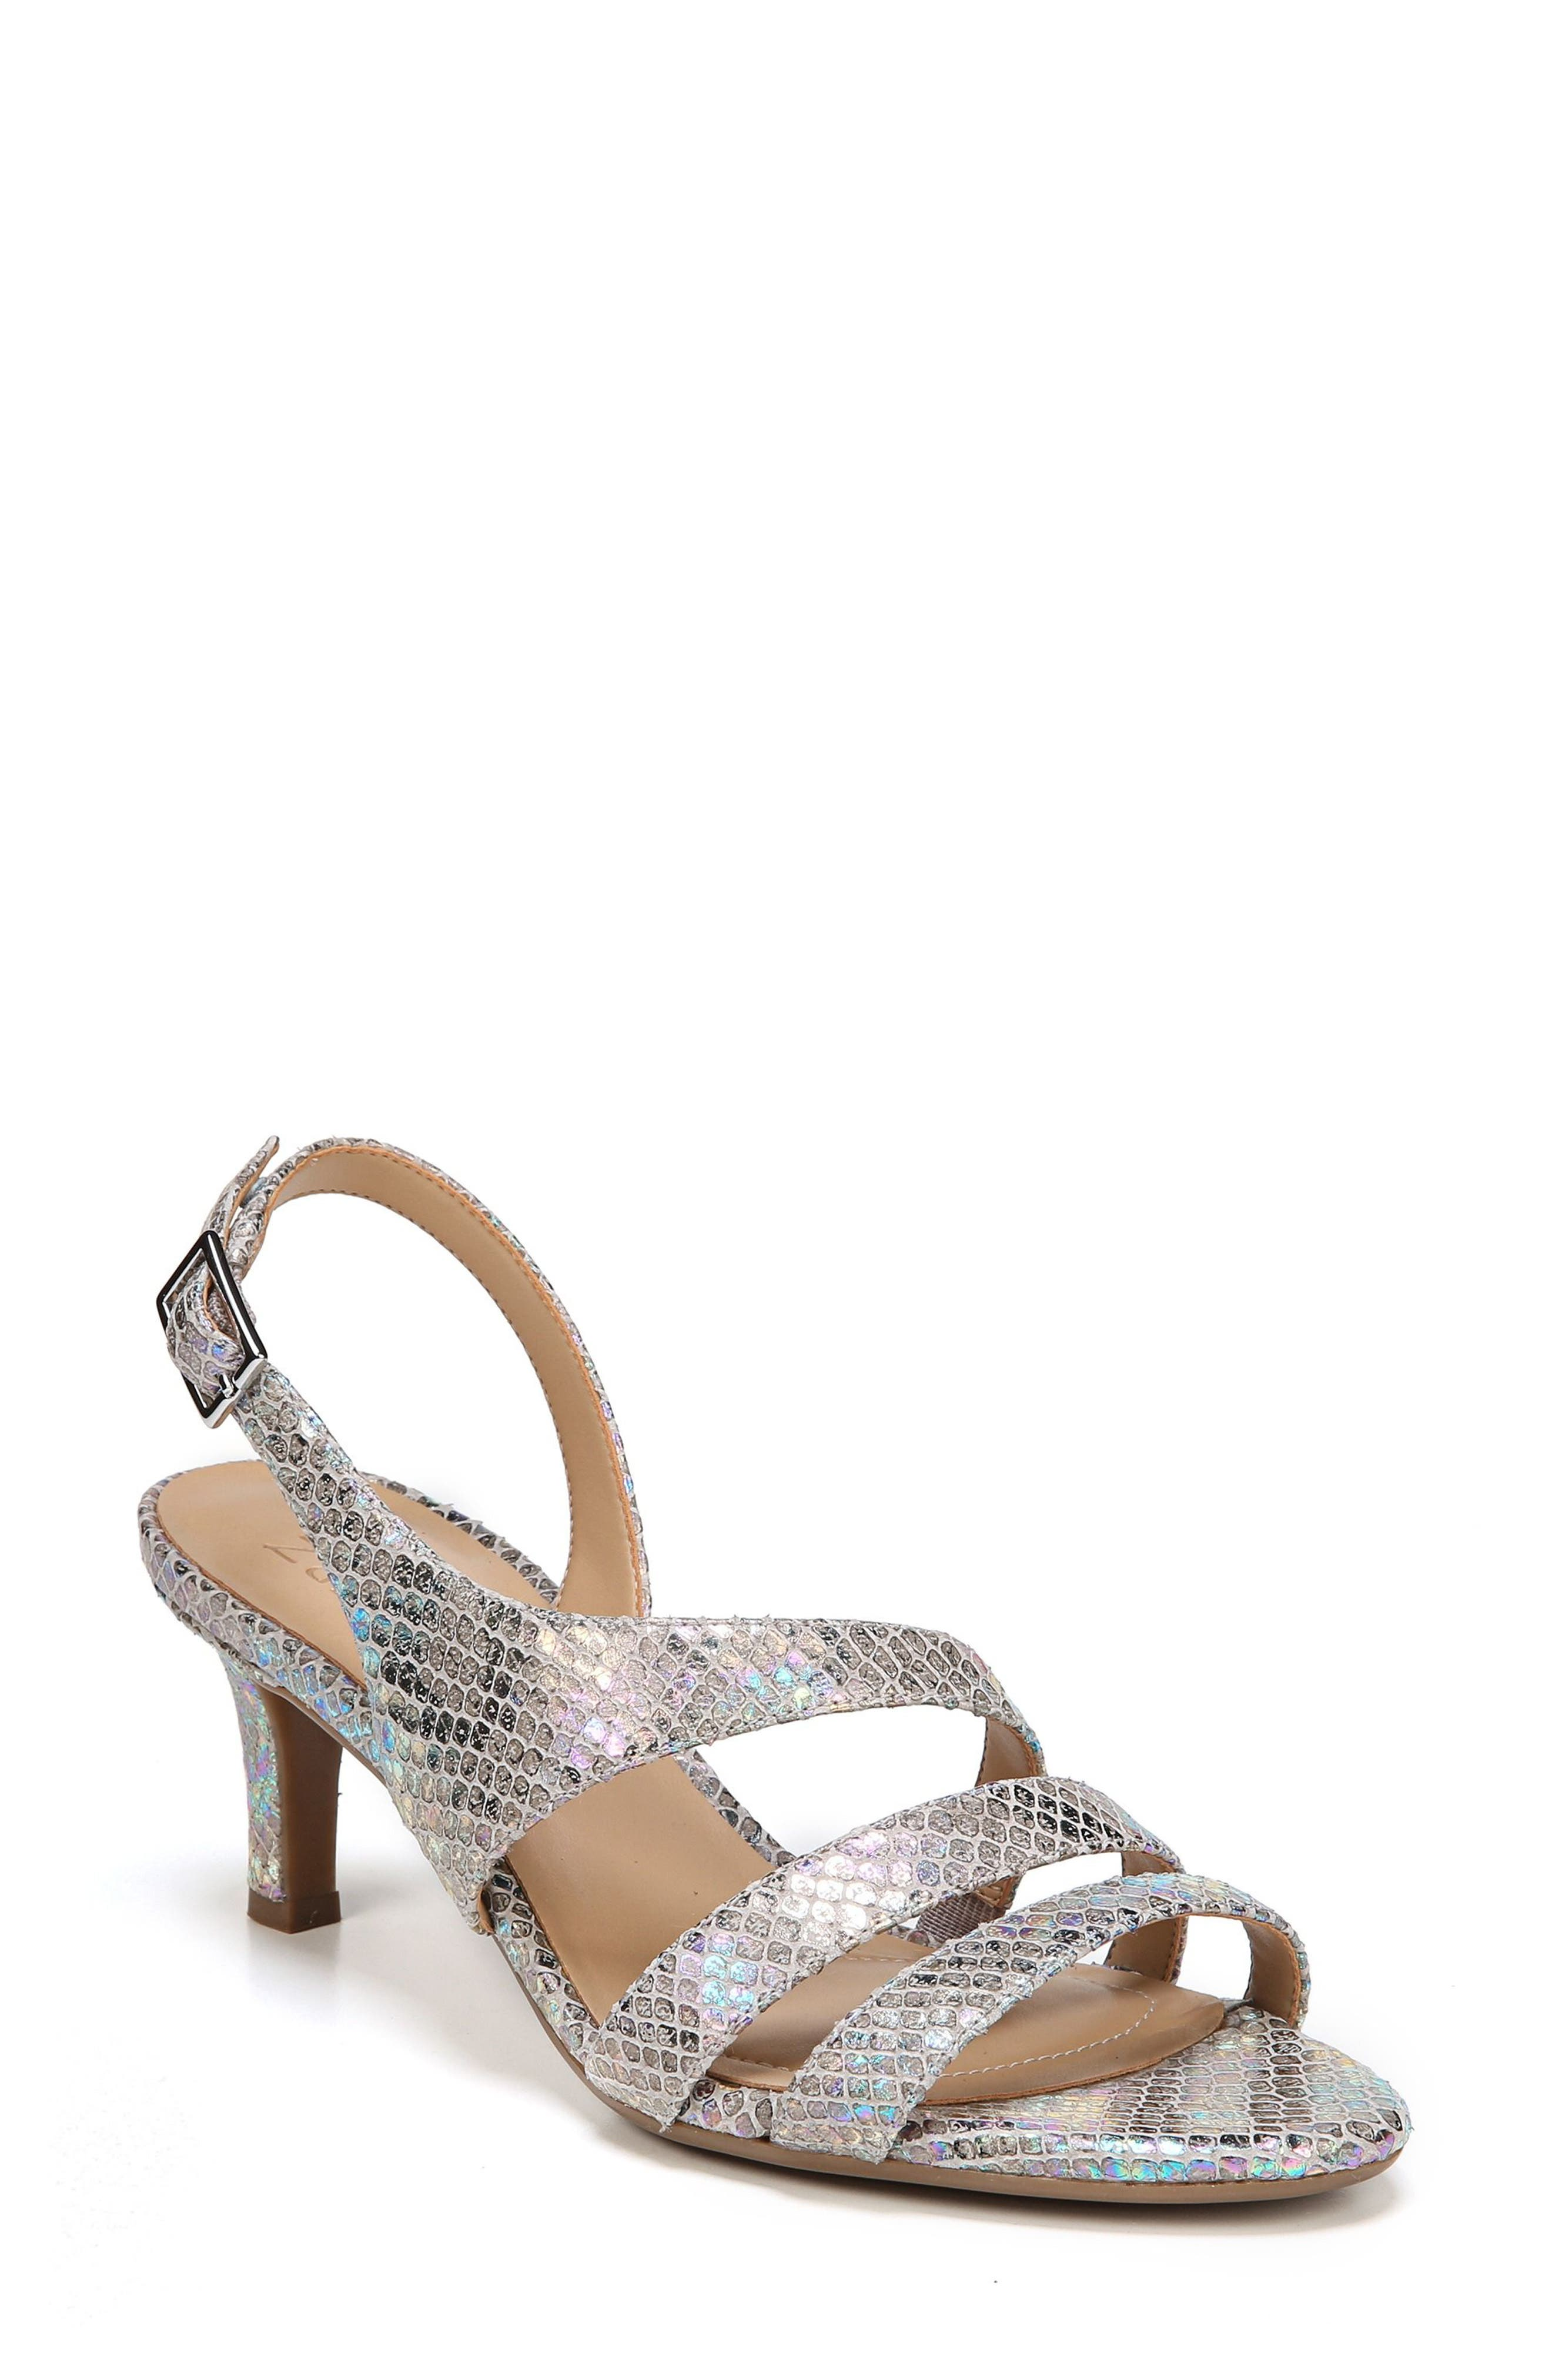 NATURALIZER, Taimi Sandal, Main thumbnail 1, color, SILVER SNAKE LEATHER PRINT